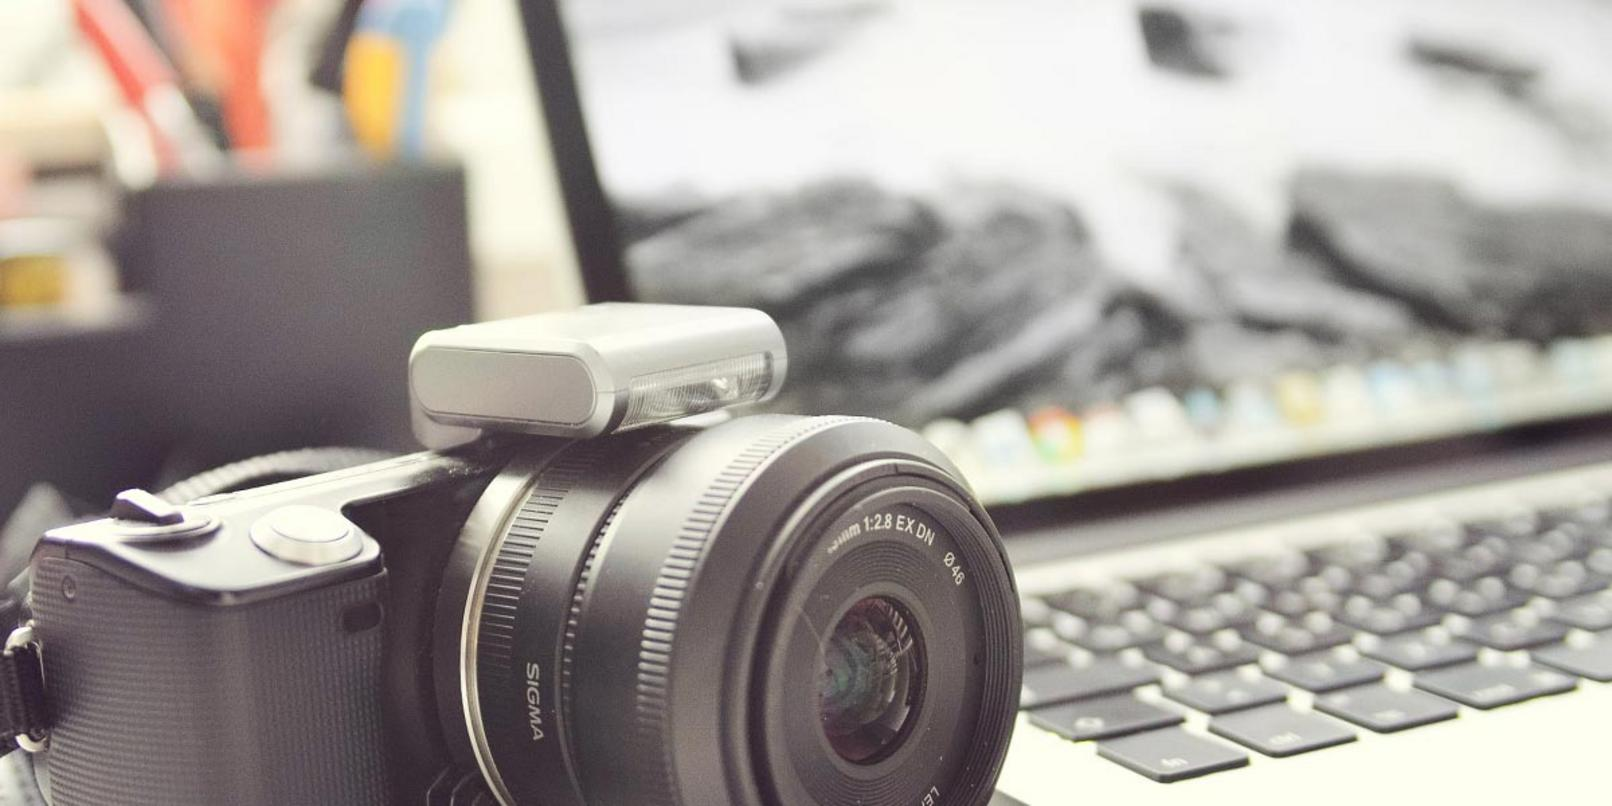 Capture and render stunning, pro-worthy images with the Adobe Digital Photo Training